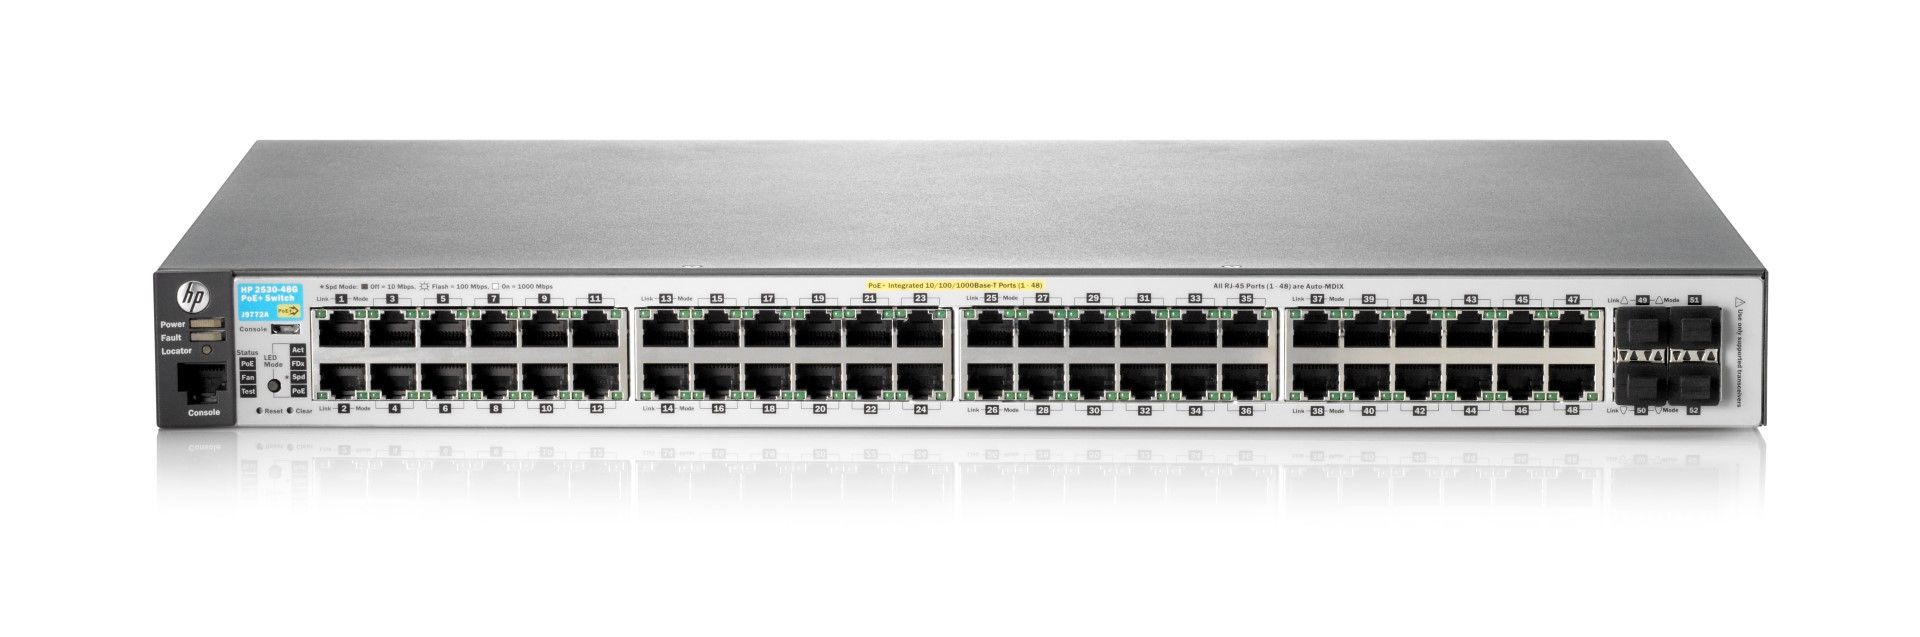 Switch HP 2530-24G-POE+ cu management cu PoE 48x1000Mbps-RJ45 (PoE+) + 4xSFP